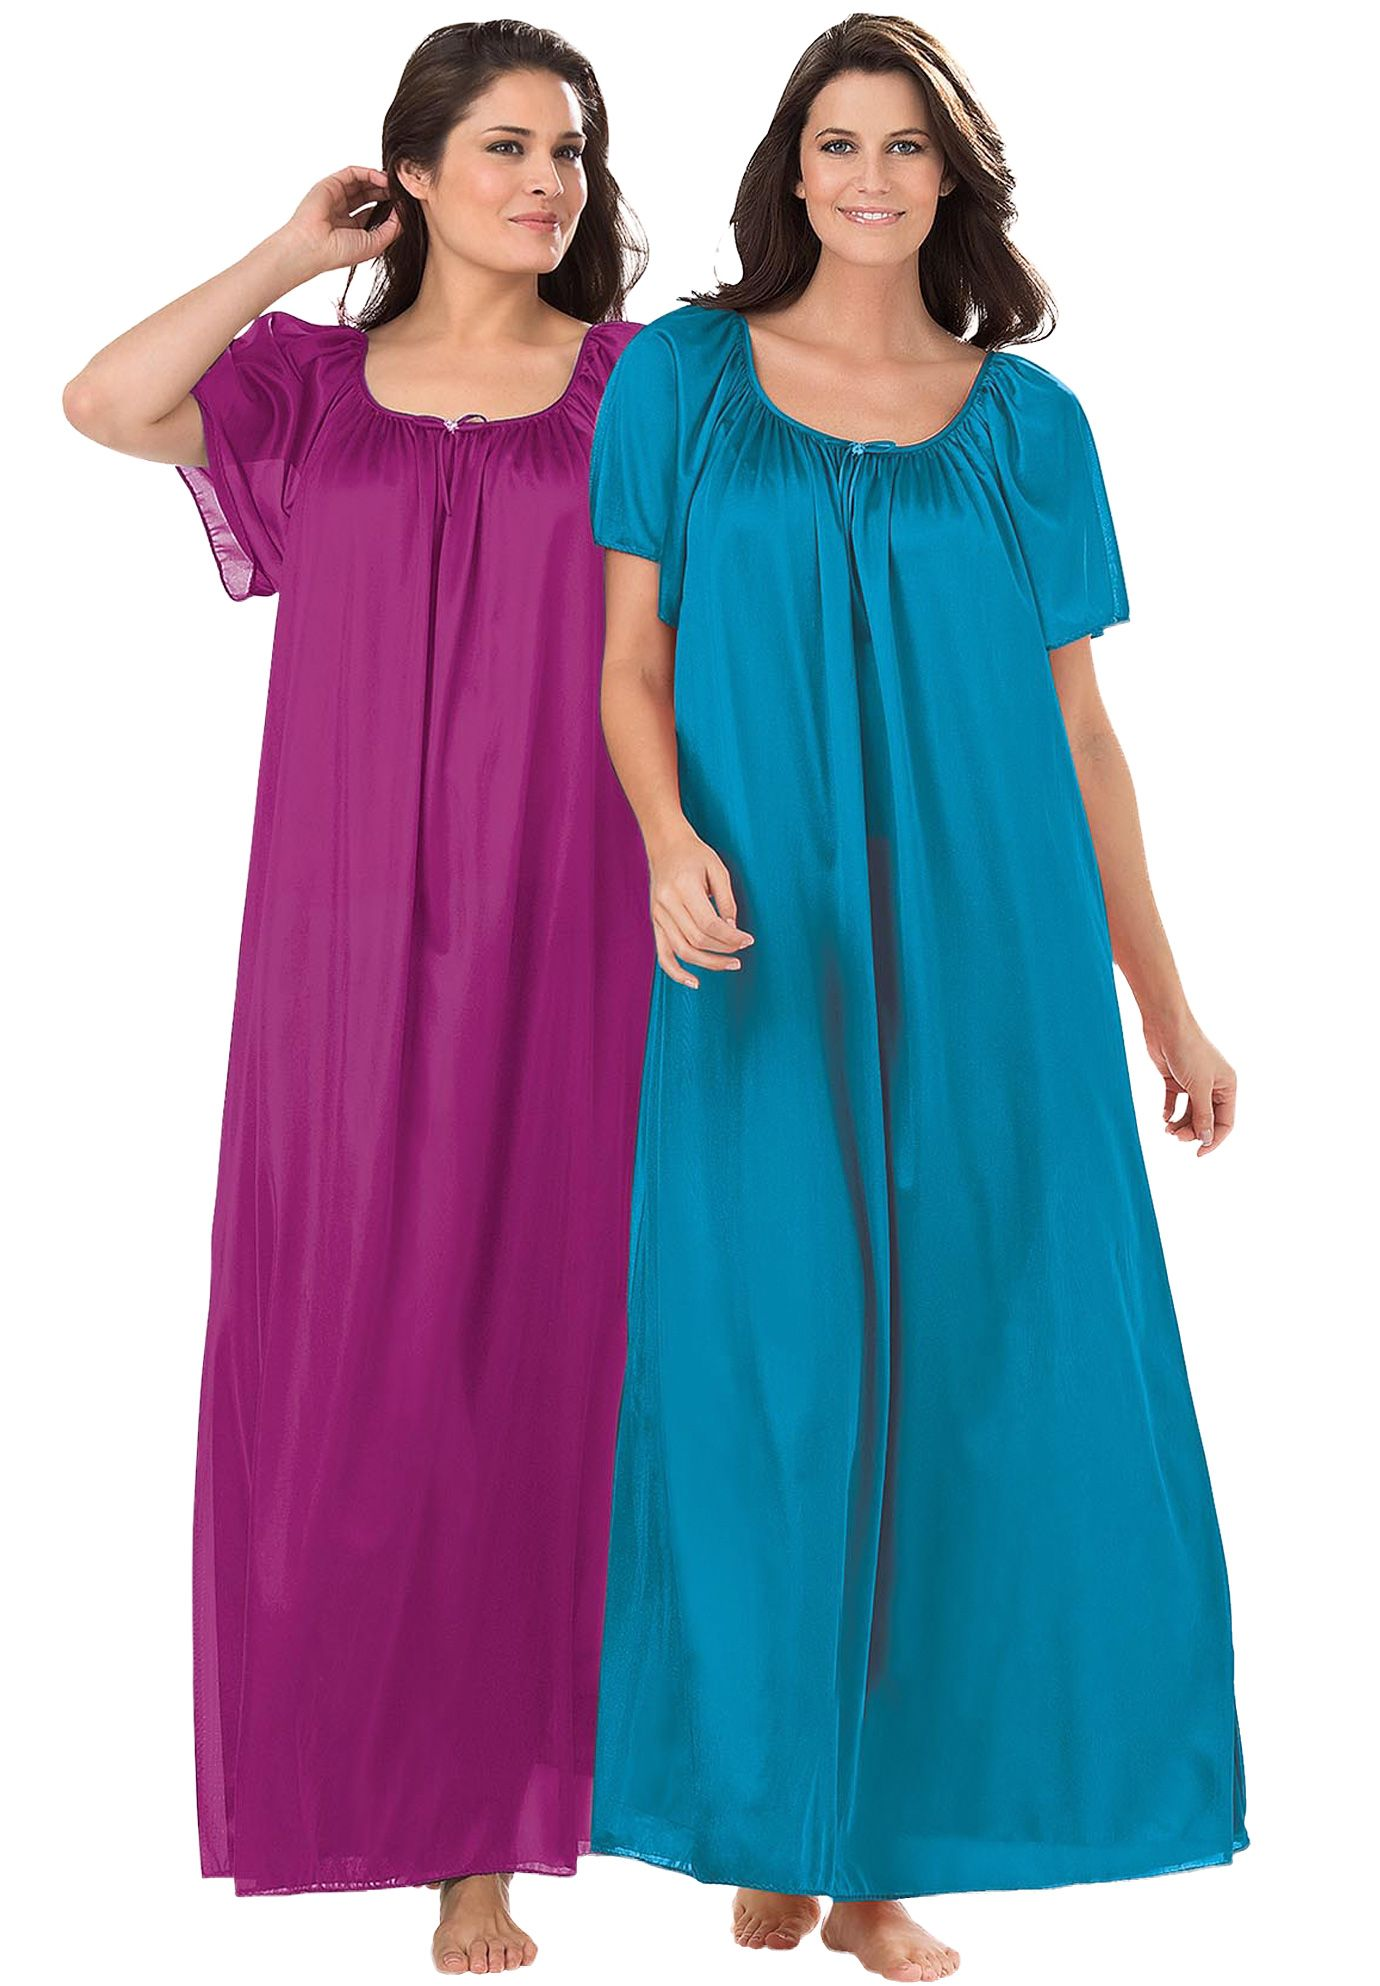 Green Women/'s Plus Size Floral Cotton Blend Long Sleeve Nightgown,5X